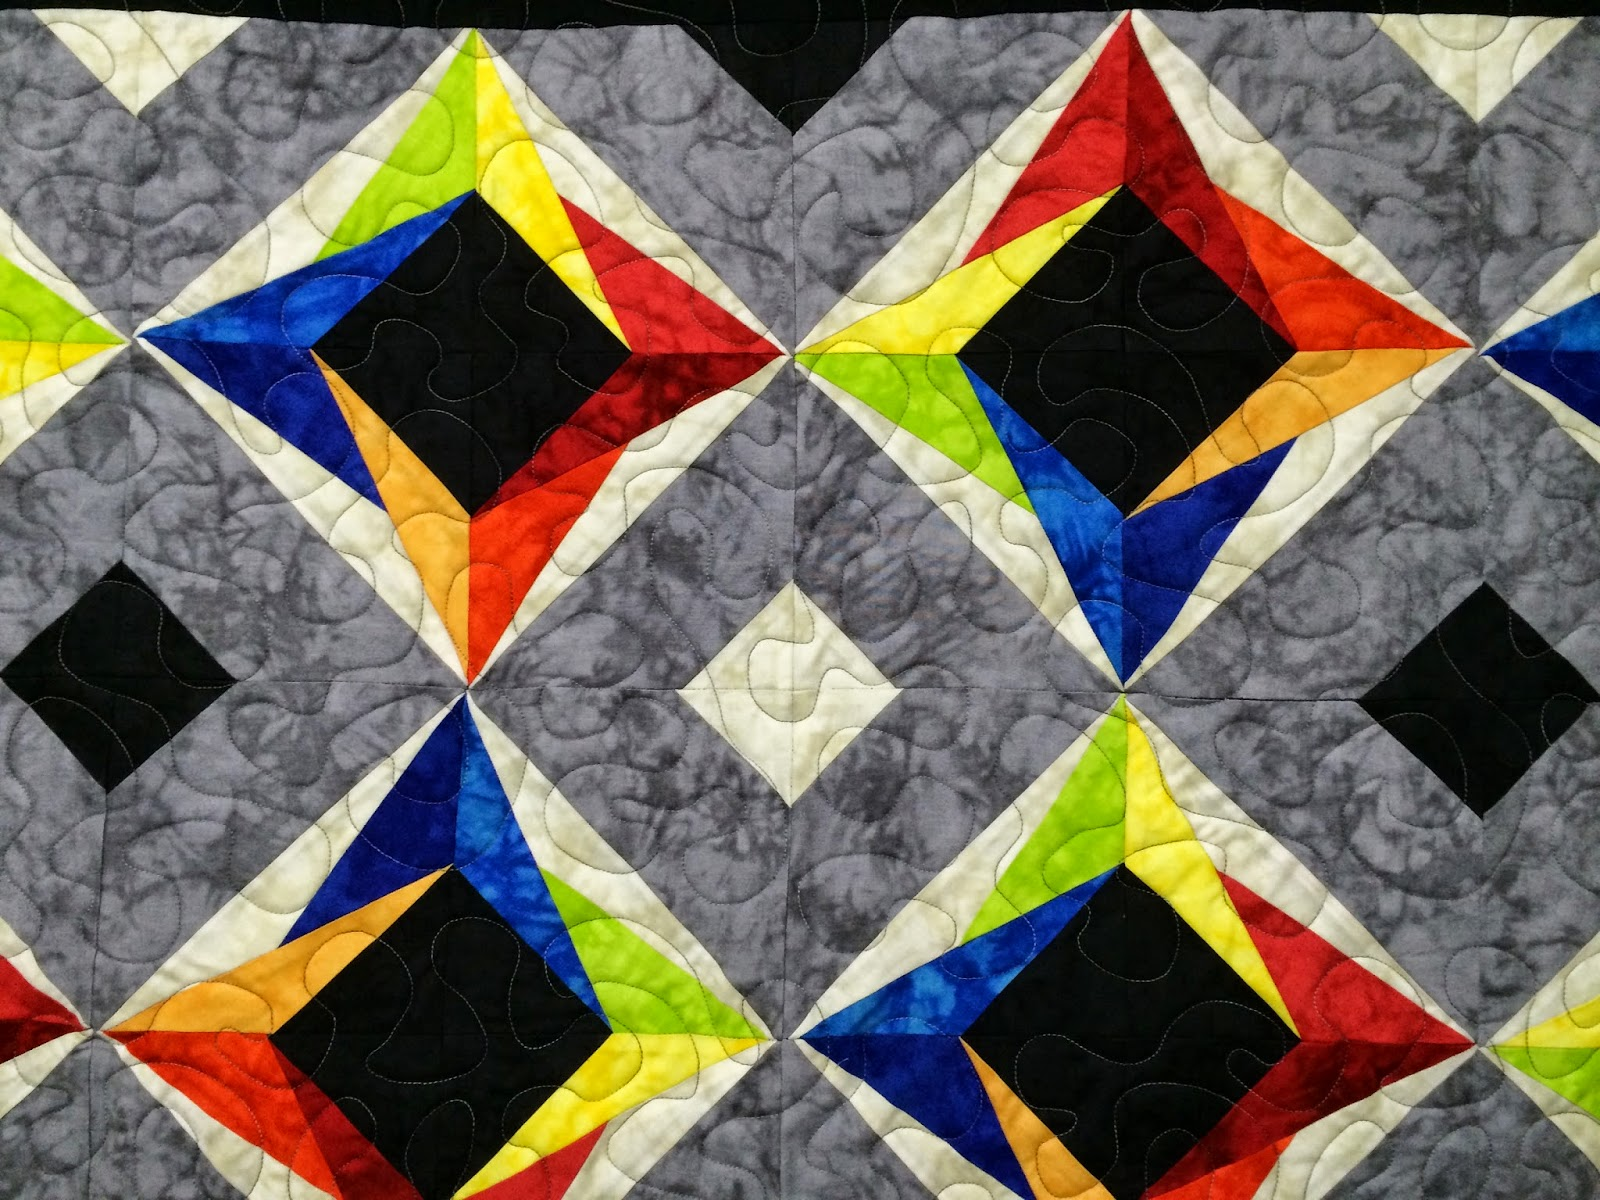 Chris Olsen's Black and Grey Kaleidoscope Quilt